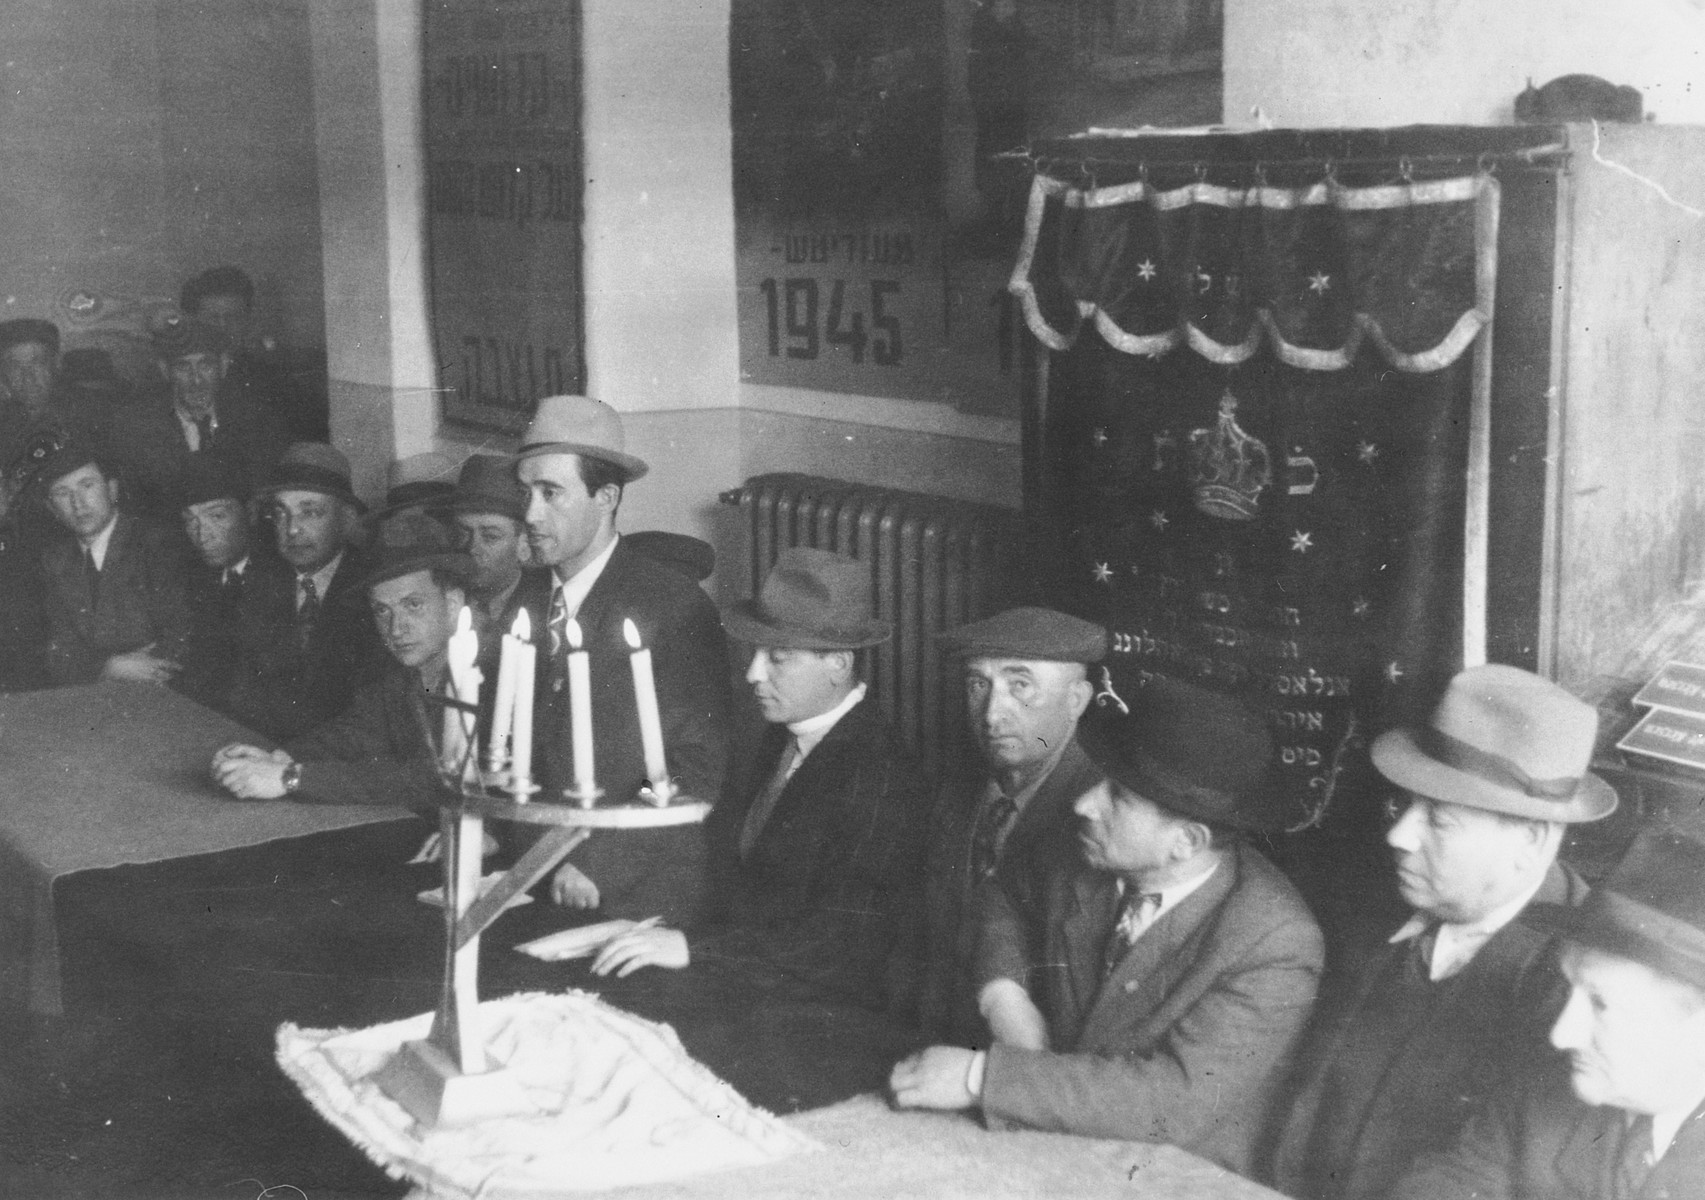 Jewish DPs gather for a memorial service in the Hasenhecke DP camp synagogue in front of the torah ark and a lit menorah.